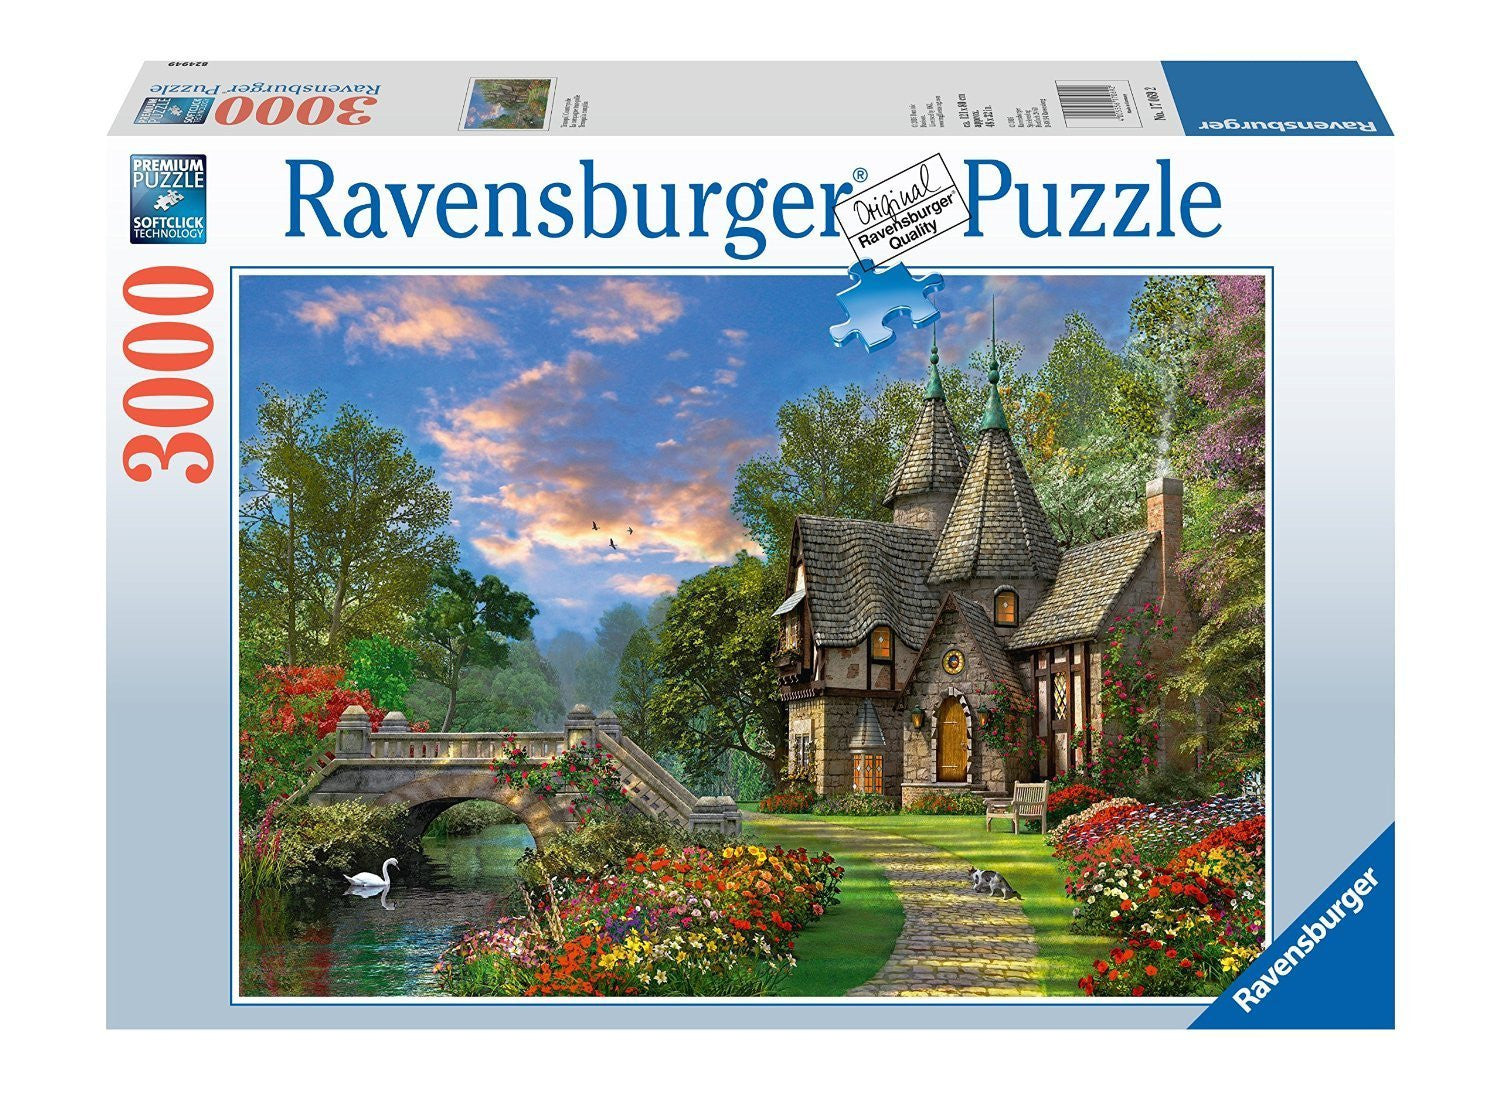 Ravensburger Adult Puzzles 3000 pc Puzzles - Tranquil Countryside 17069